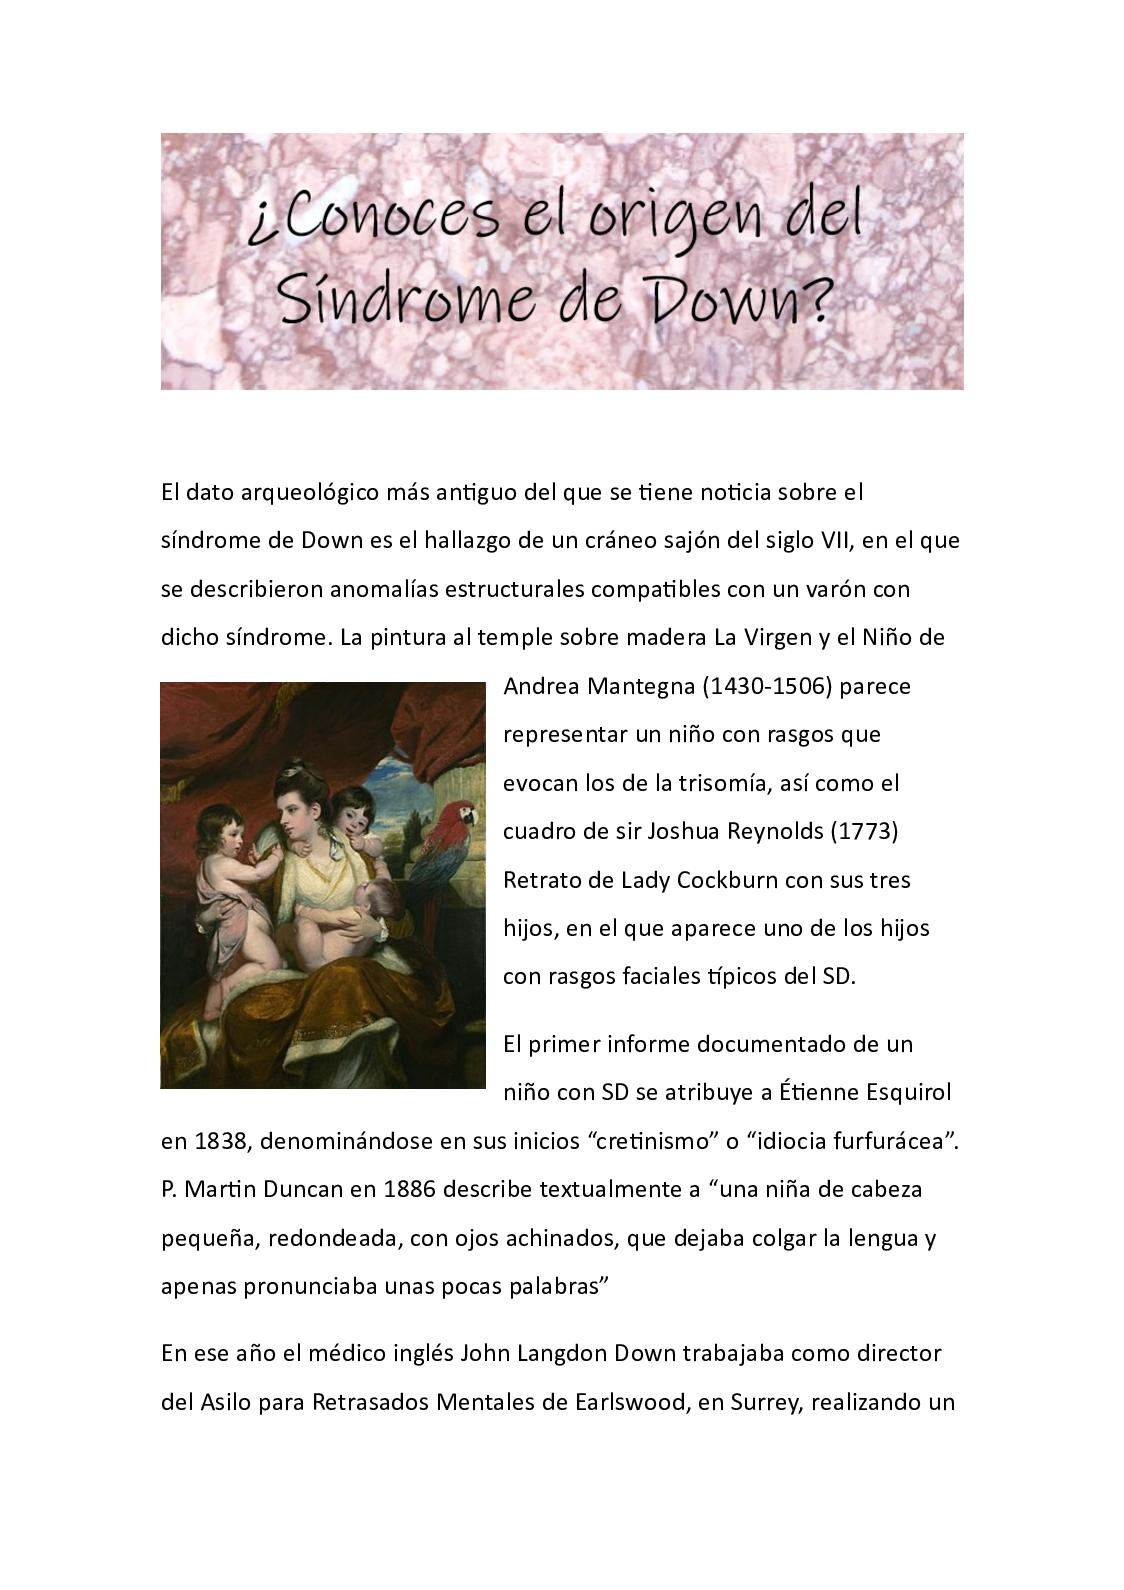 diabetes tipo 1, síndrome de down blog evie